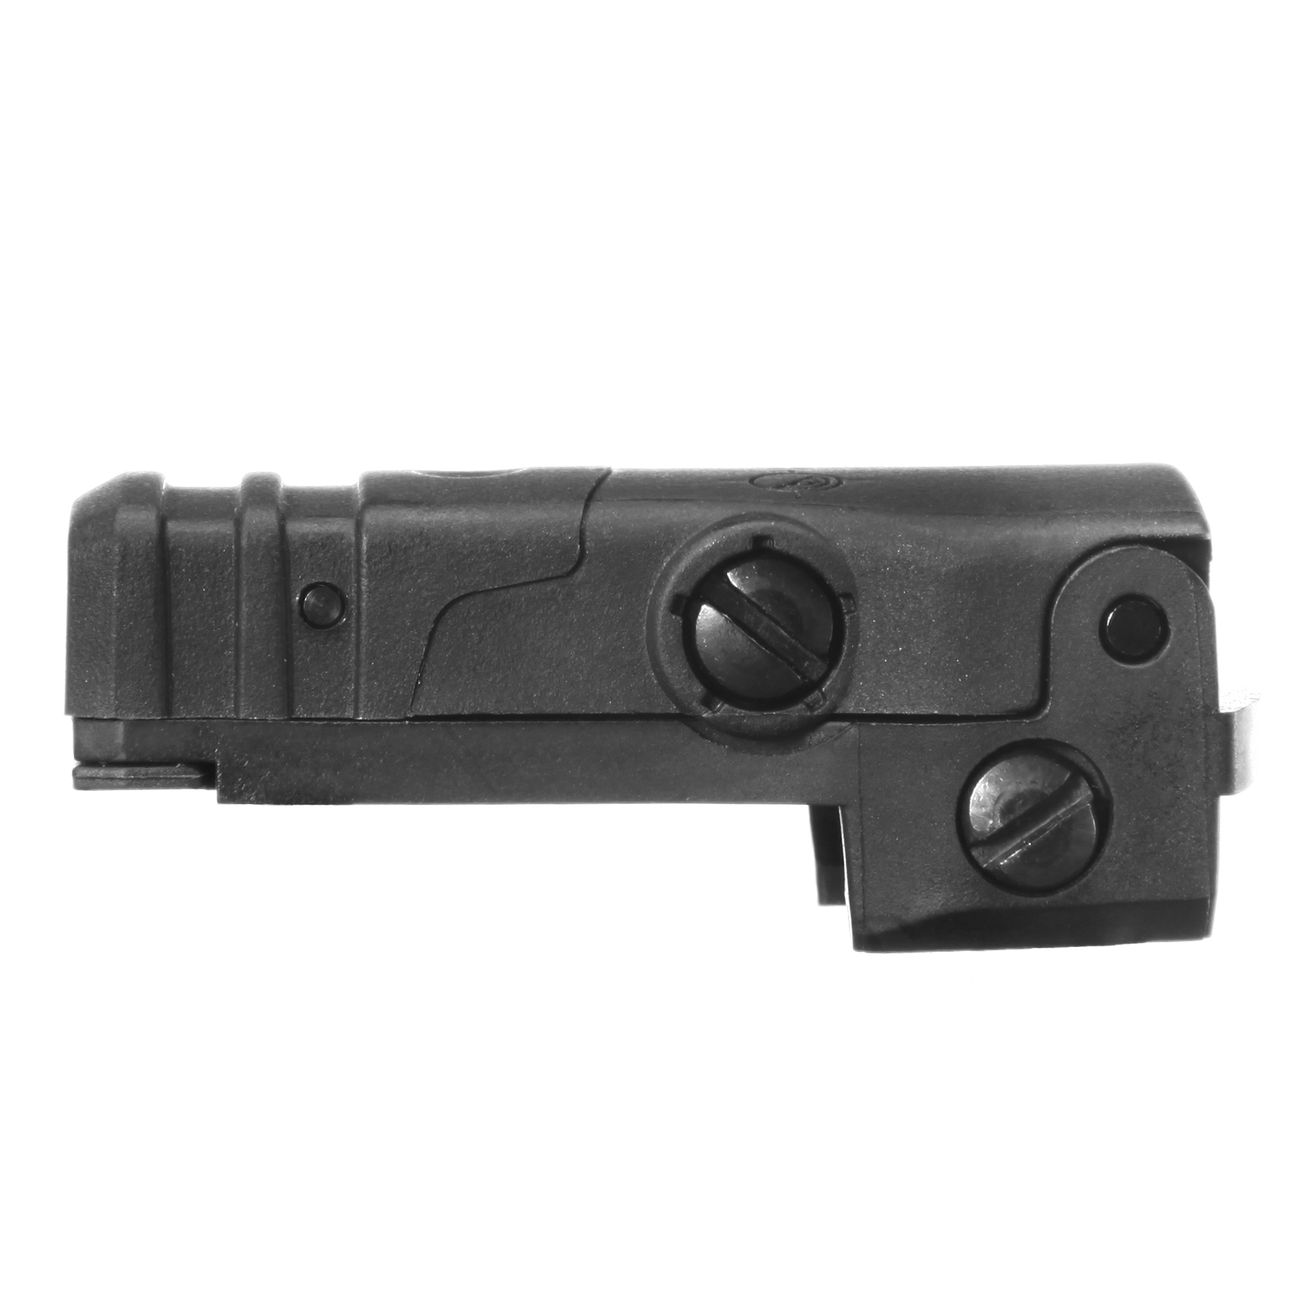 MFT BUPSWR Polymer Flip-Up Rear Sight f. 21mm Schienen schwarz 4